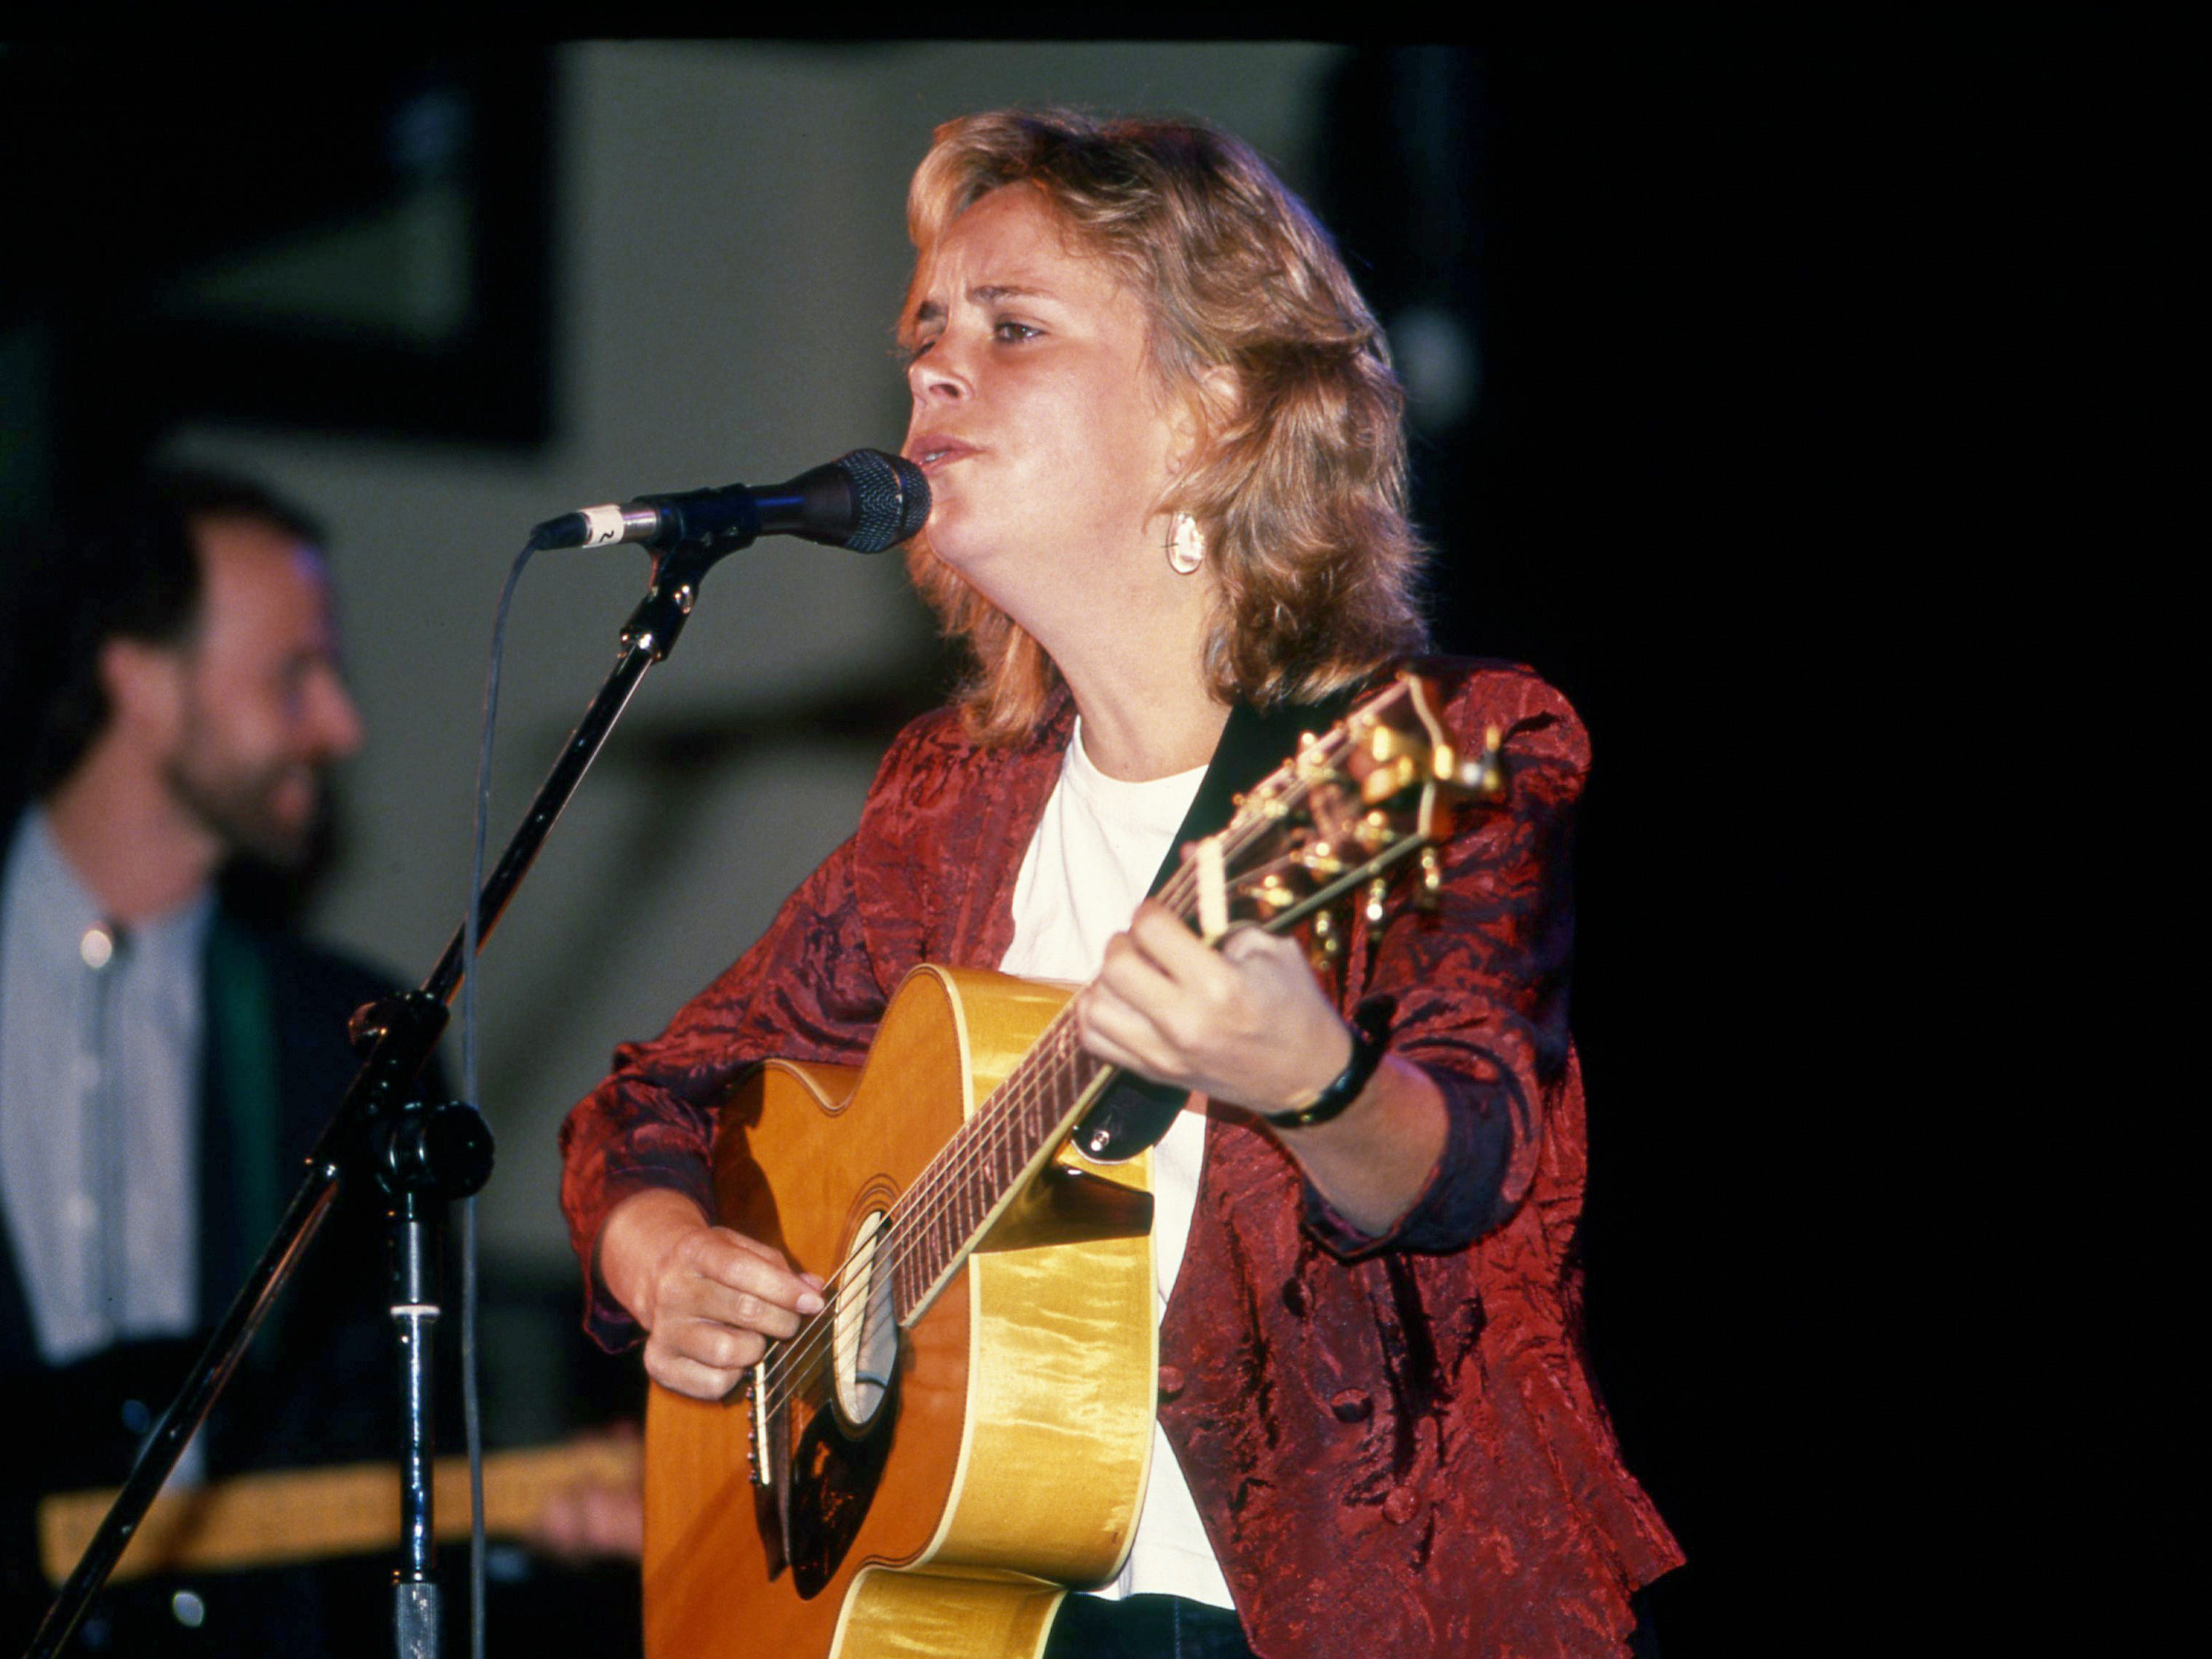 Mary Chapin Carpenter offers some of her folk-country fusion sound during the Talent Buyers Entertainment Marketplace at the Hyatt Regency Hotel on Oct. 8, 1988. The Washington, D.C., stylist was one of 15 young acts that were showcased to kick off Country Music Week activities.